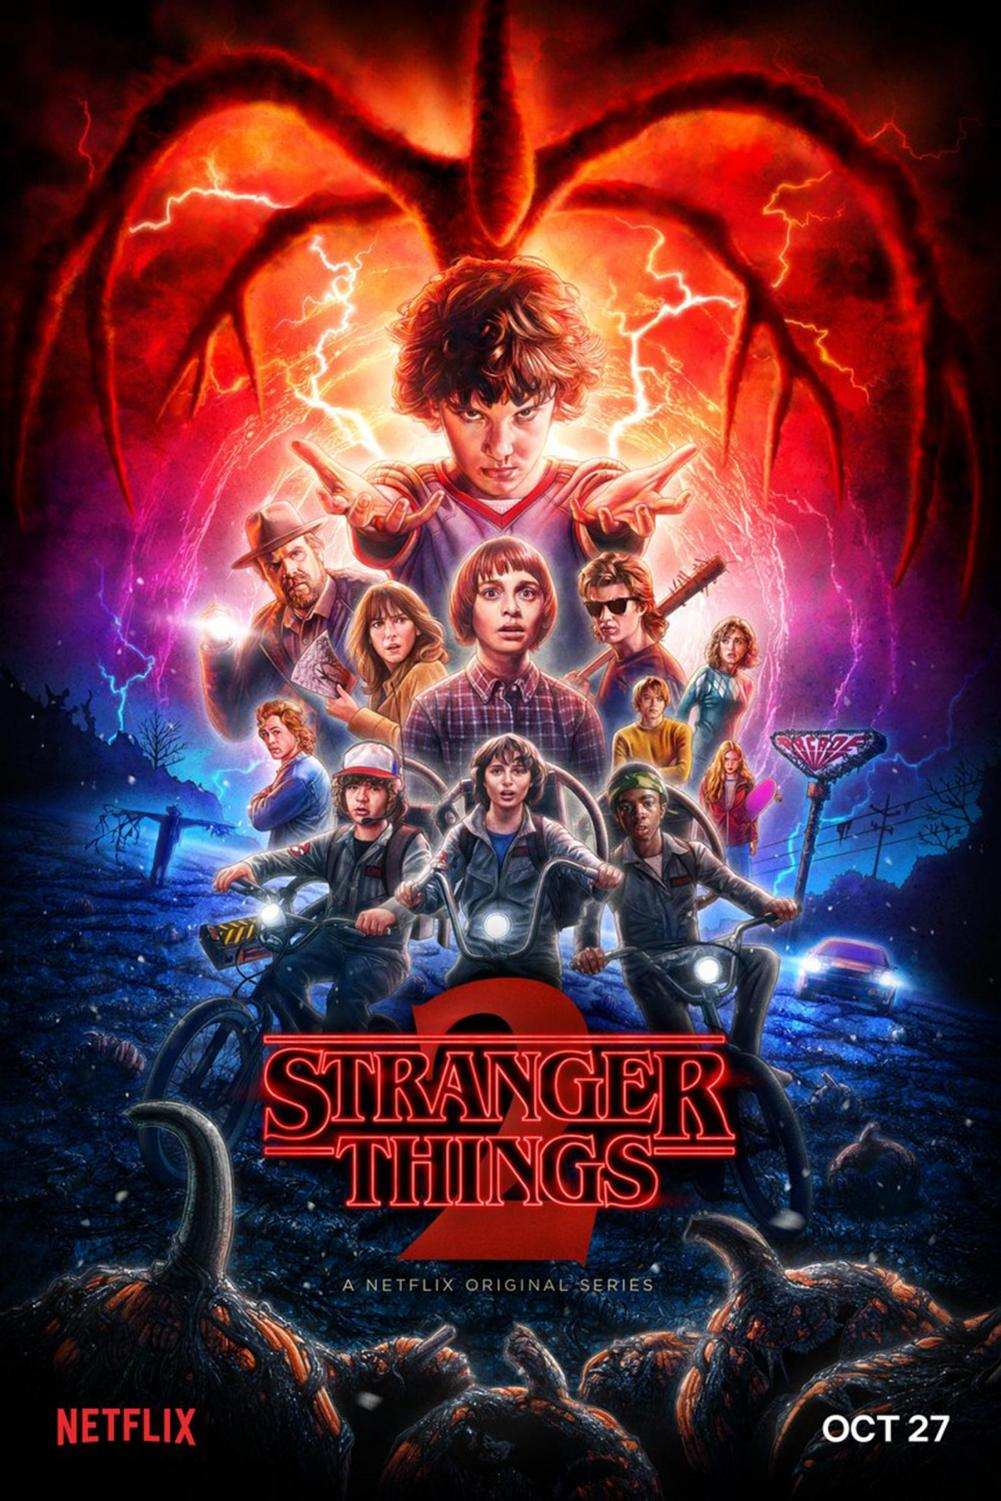 Poster for season two of Stranger Things